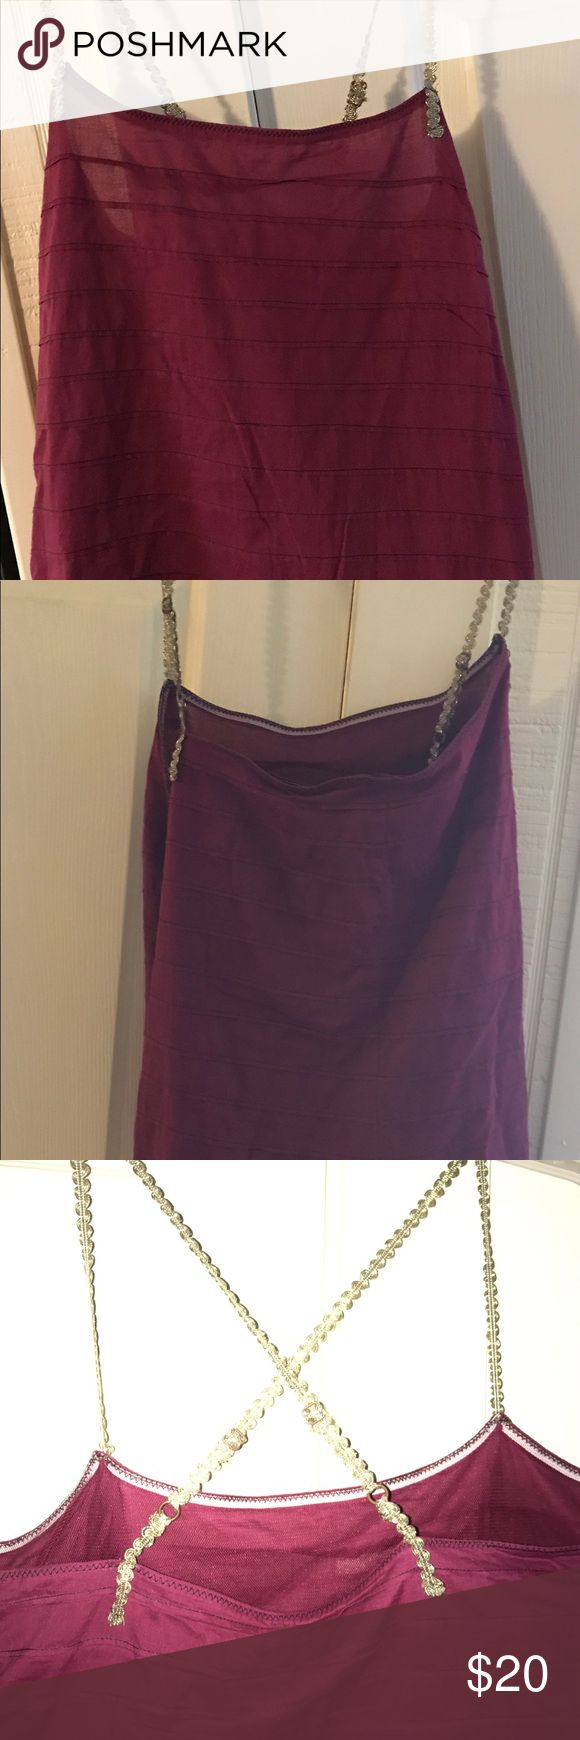 Free People Top Free People wine and gold strappy top. Sheer underlay at the bottom adds interest. Gold braided adjustable straps cross in the back, making the top adorable whether you're coming or going! Side zip for easy on/off, size 10 Free People Tops Tank Tops